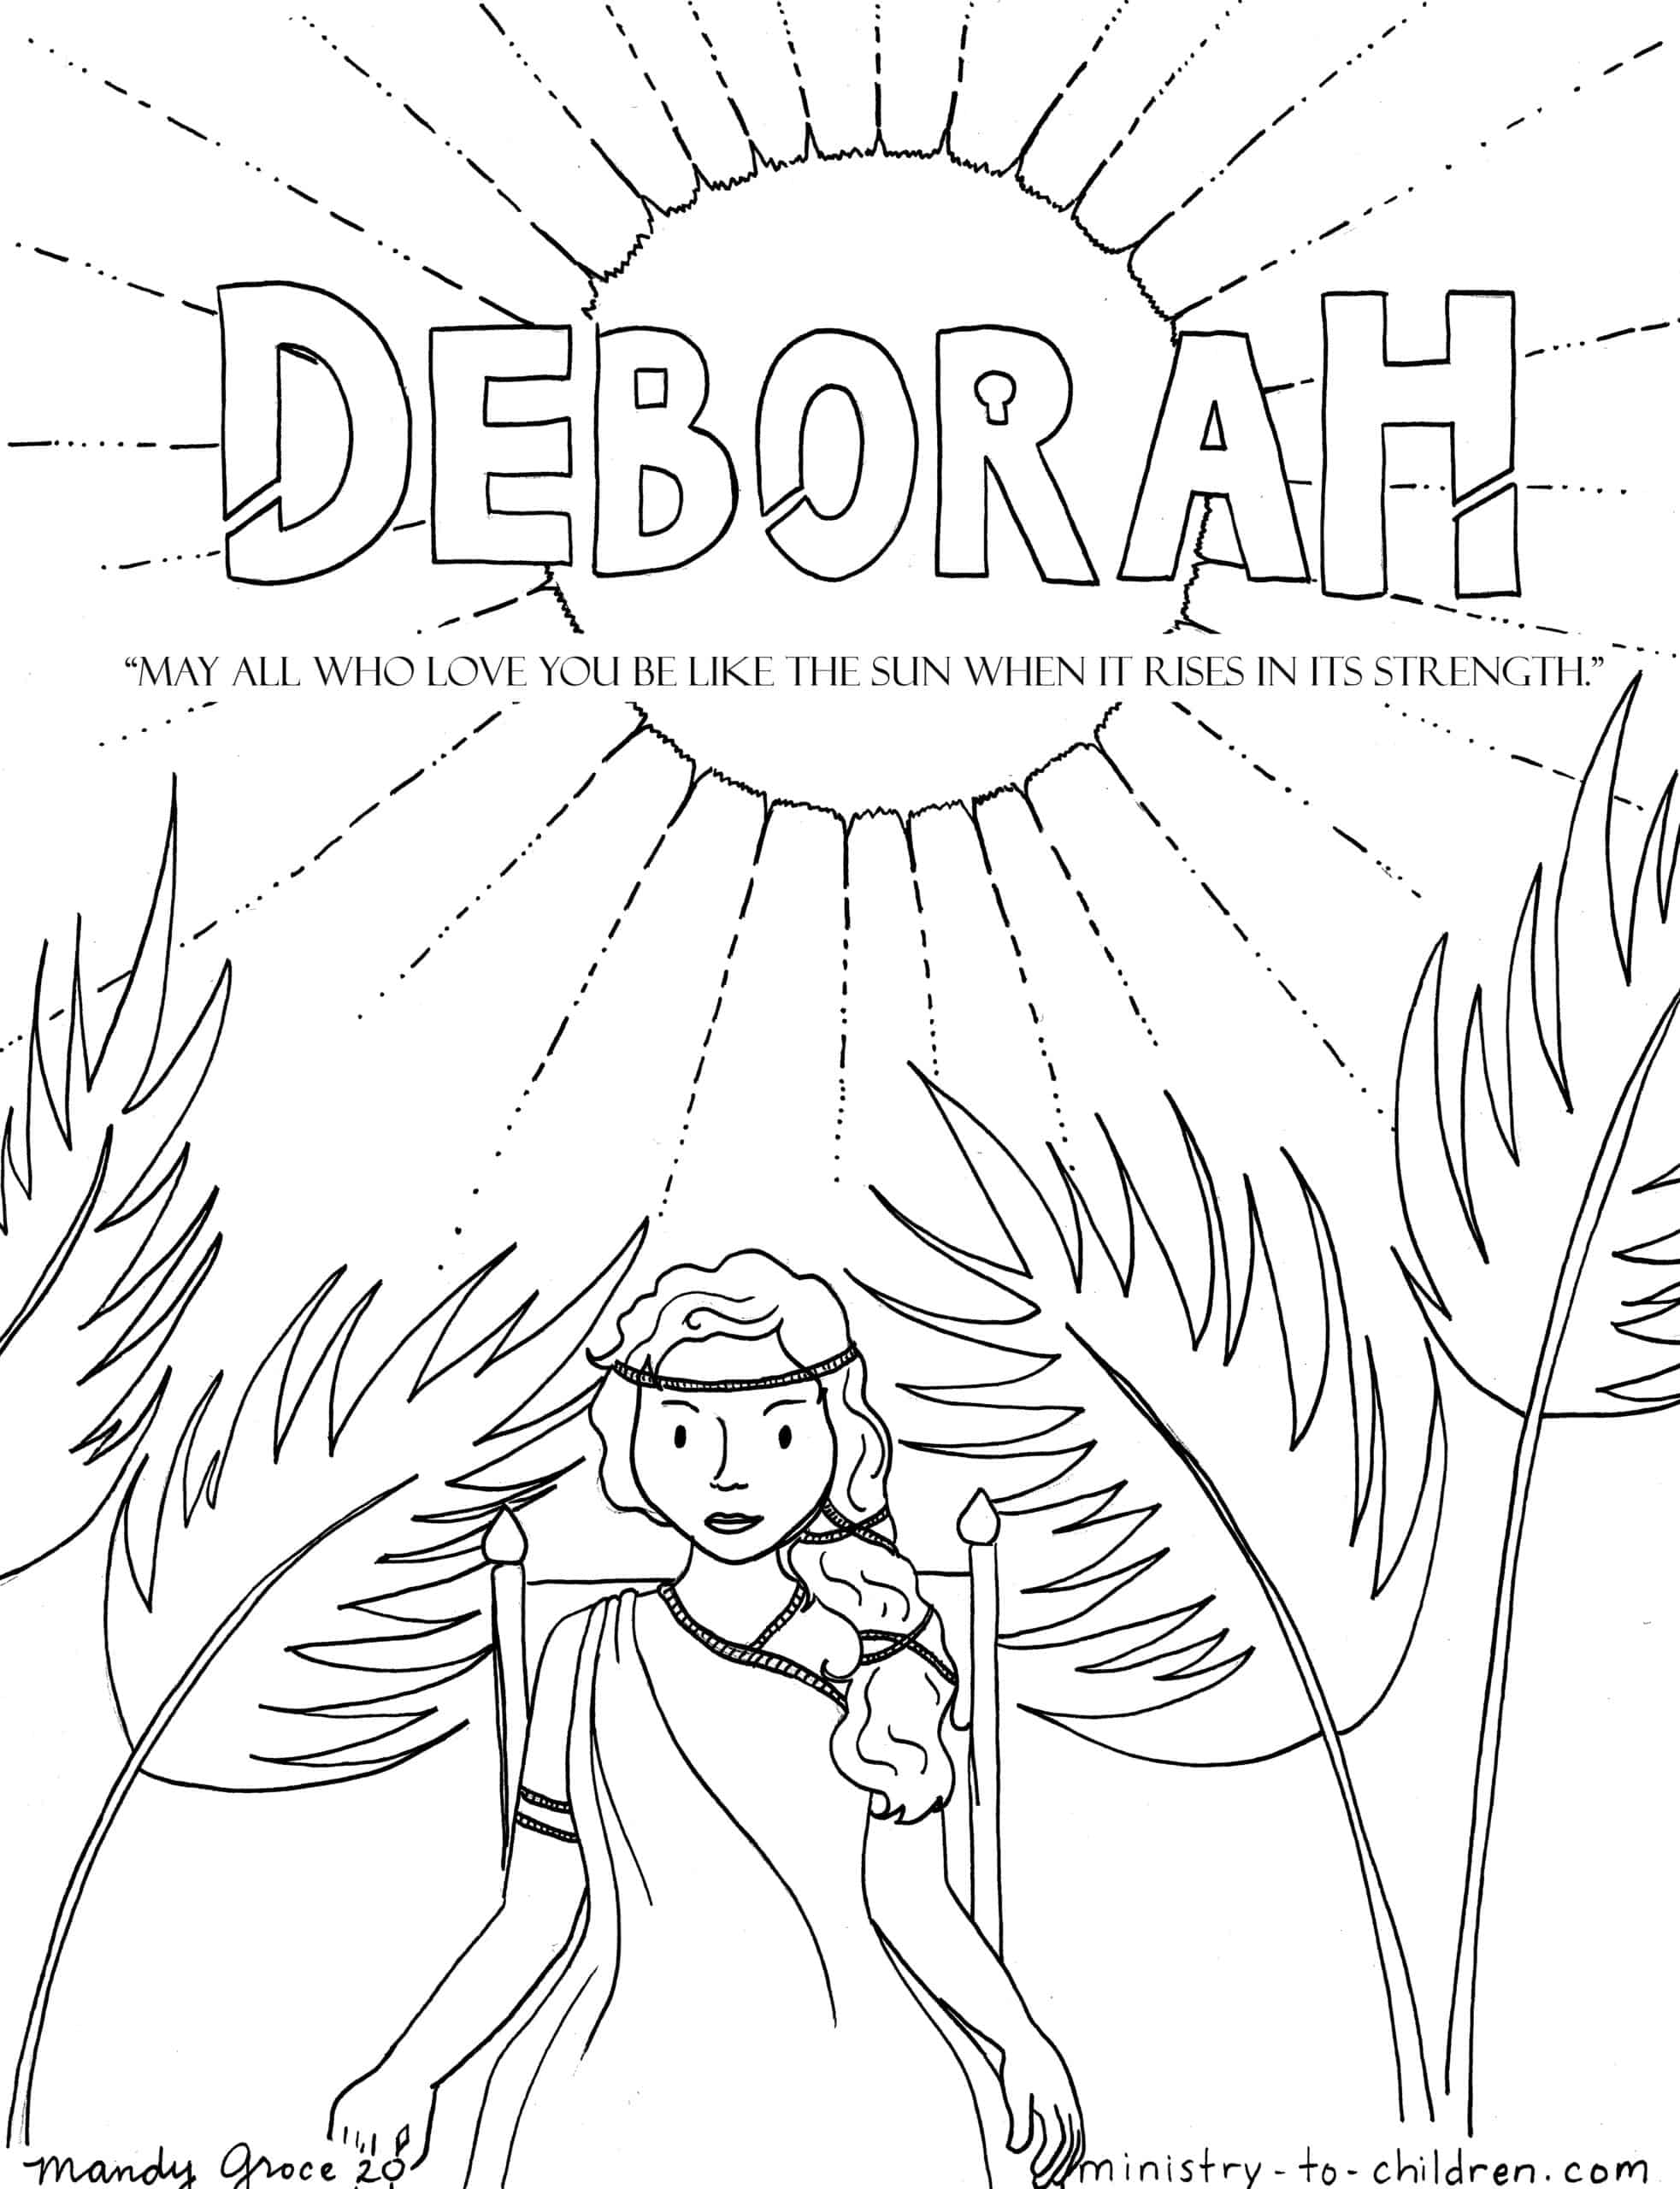 Deborah Coloring Page Ministry-To-Children